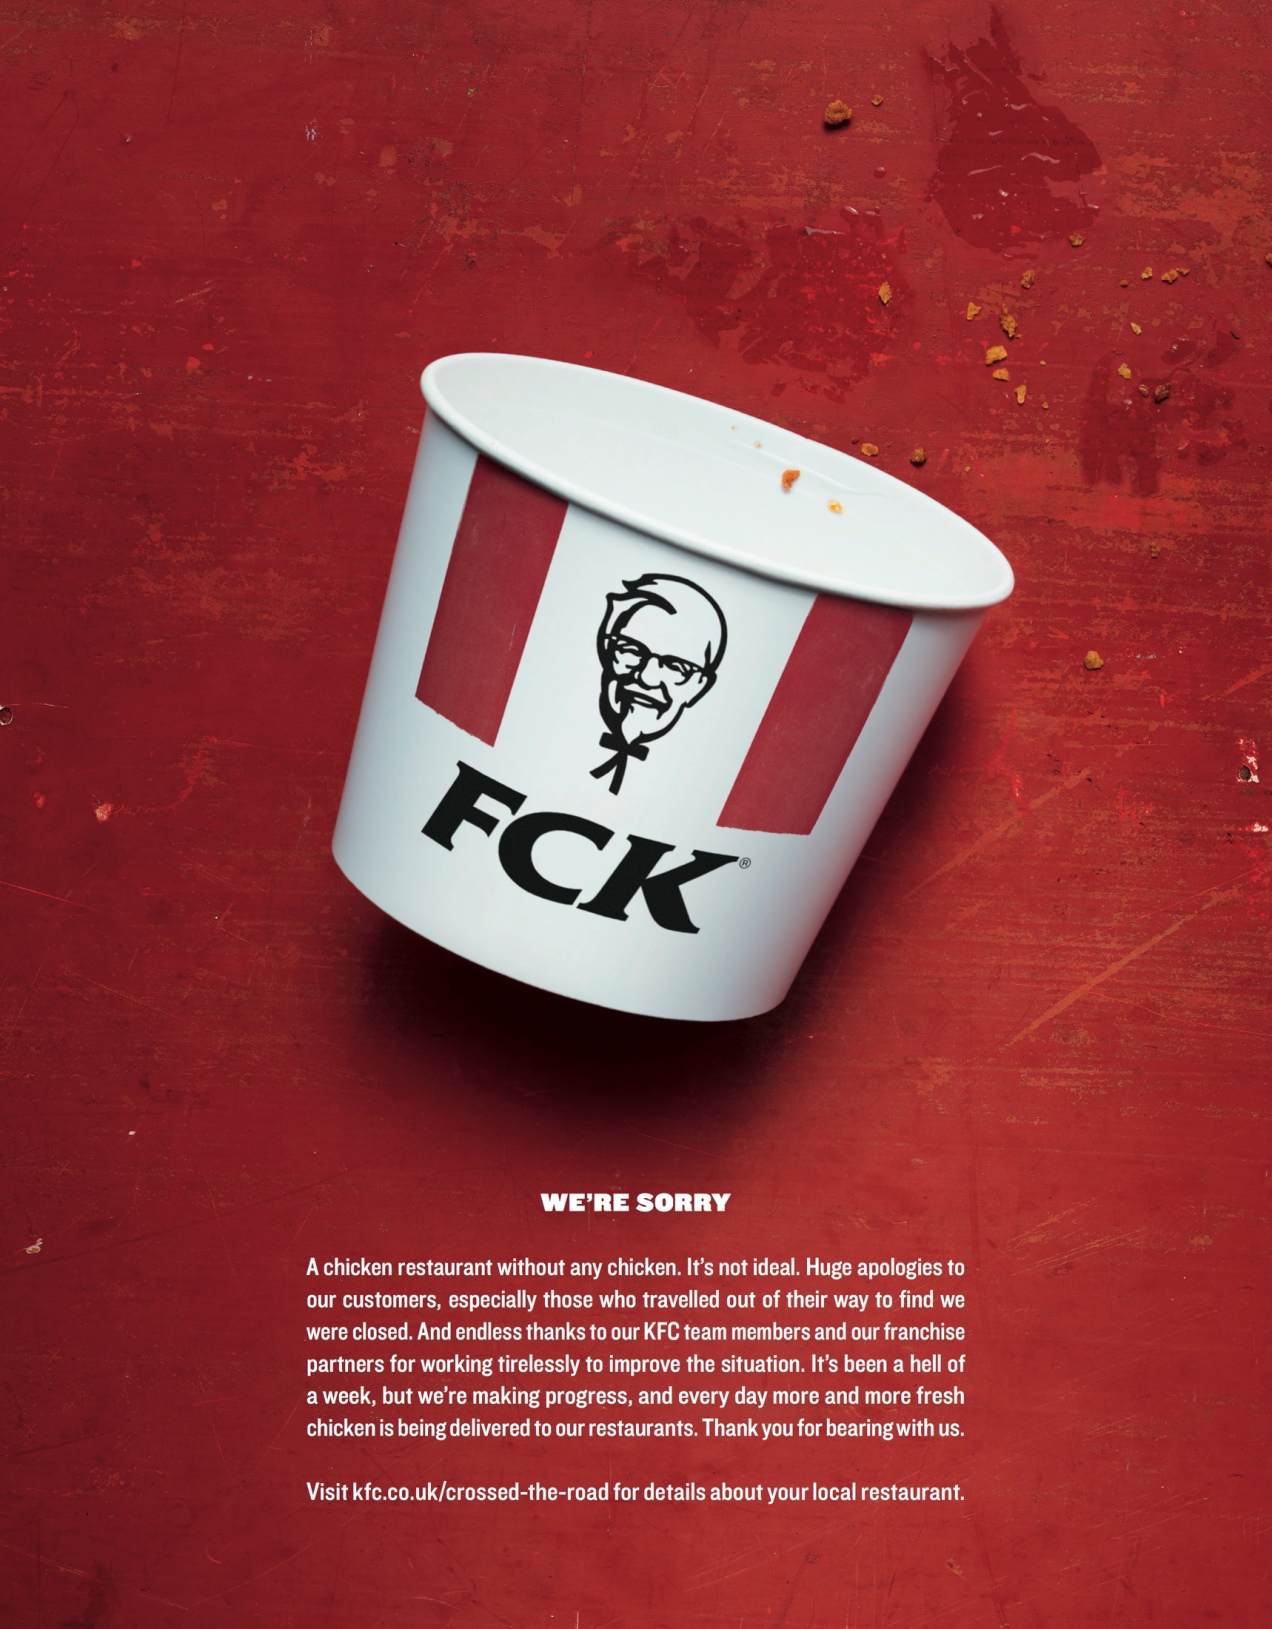 Damon Stapleton: Advertising. Norah Jones, KFC and forgiveness